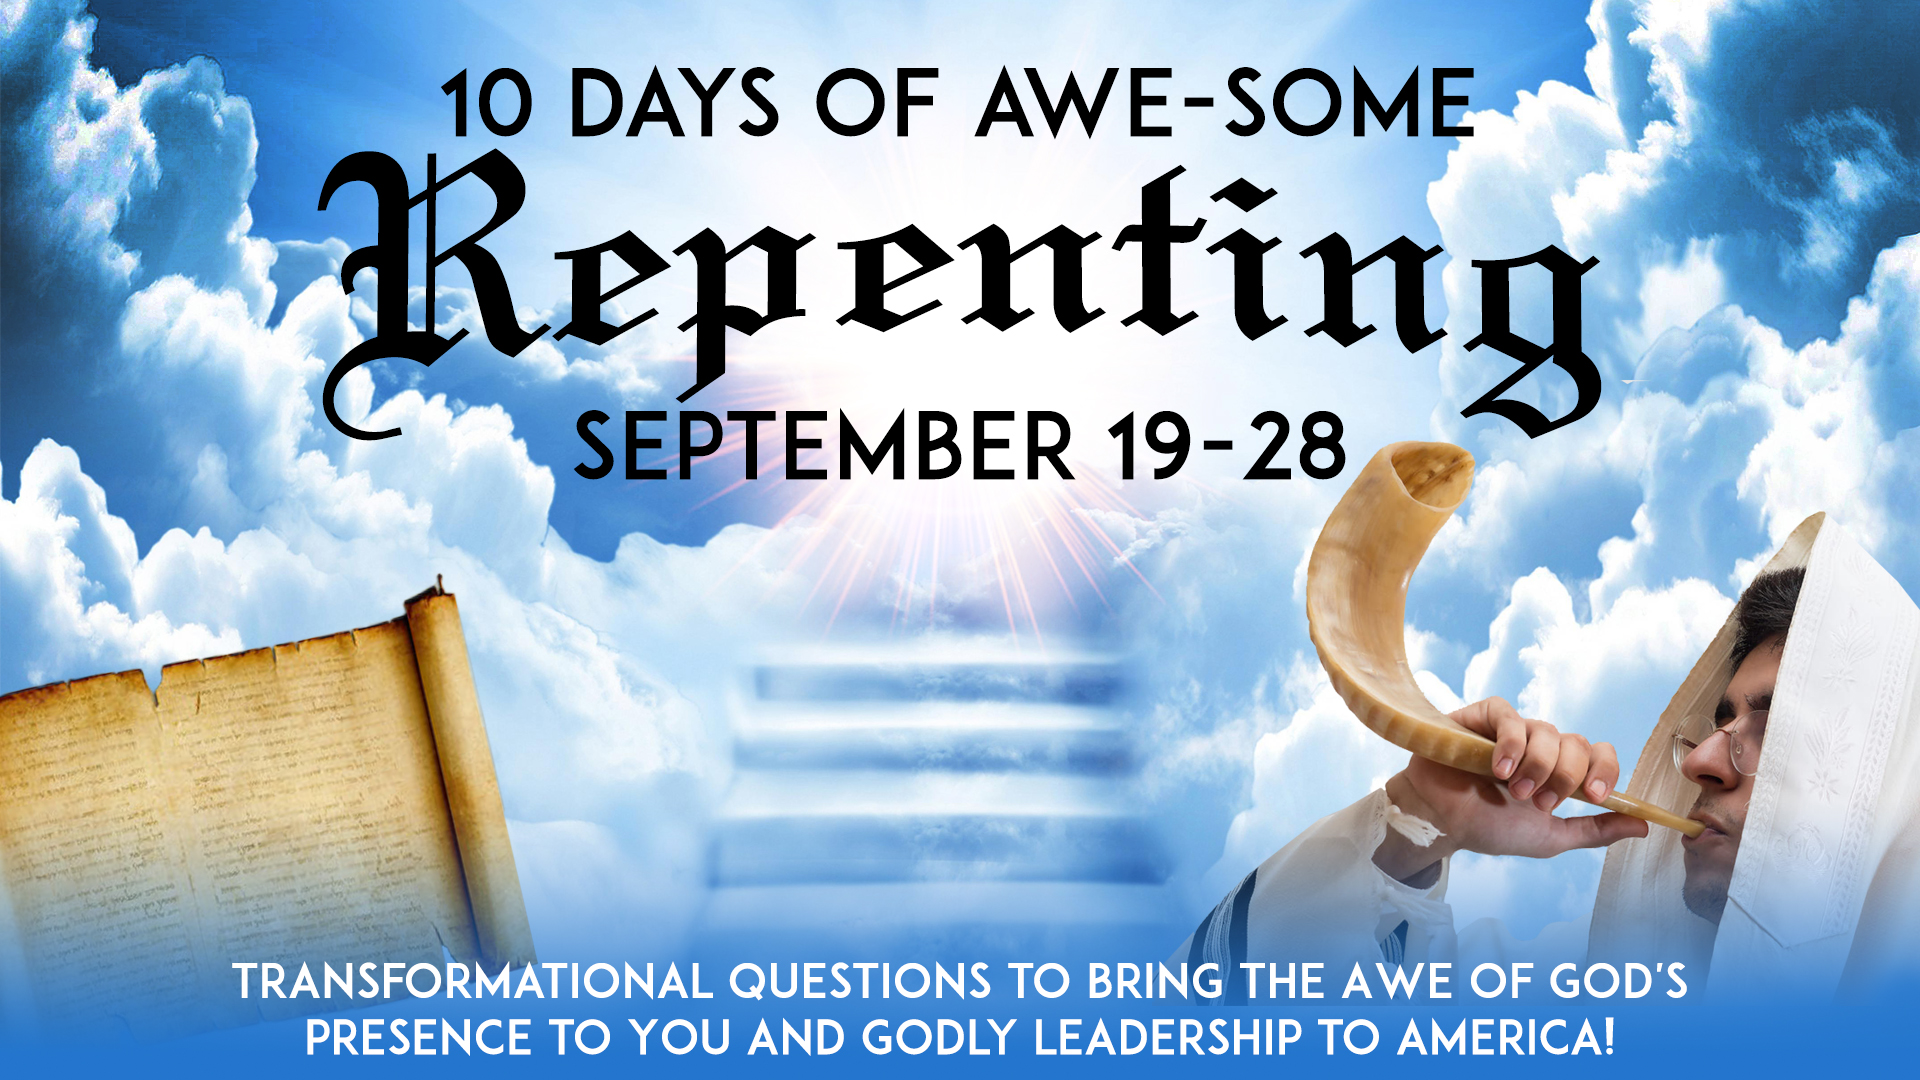 10 Days of Awe-Some Repenting